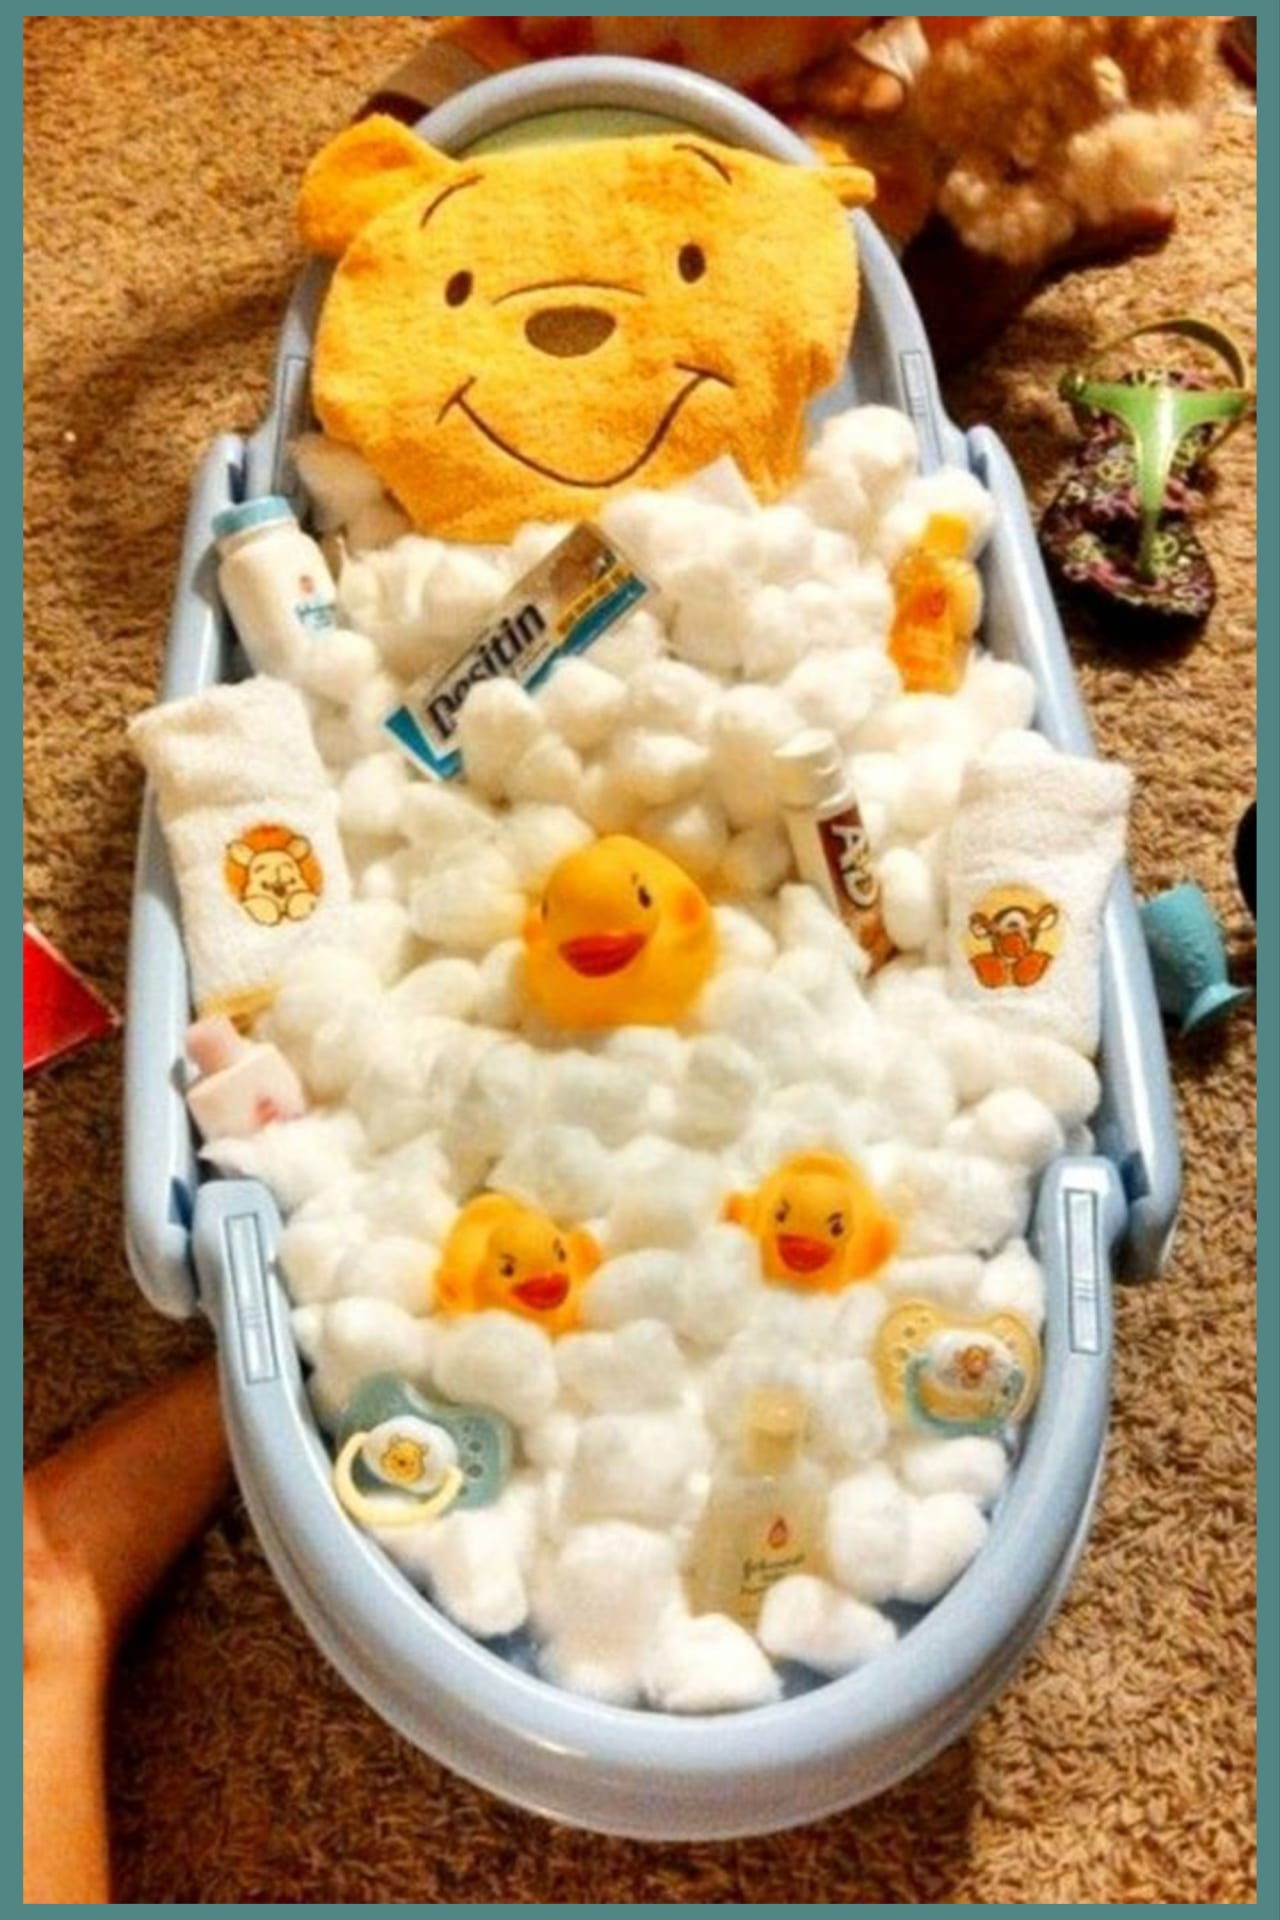 DIY baby shower gifts! Homemade Baby Bathtub Gift Basket shower gift ideas - Baby shower gift ideas on a budget - unique and cheap baby shower gifts to make for girls for boys or for gender unknown (gender neutral) - creative baby basket ideas and winnie the pooh baby shower ideas